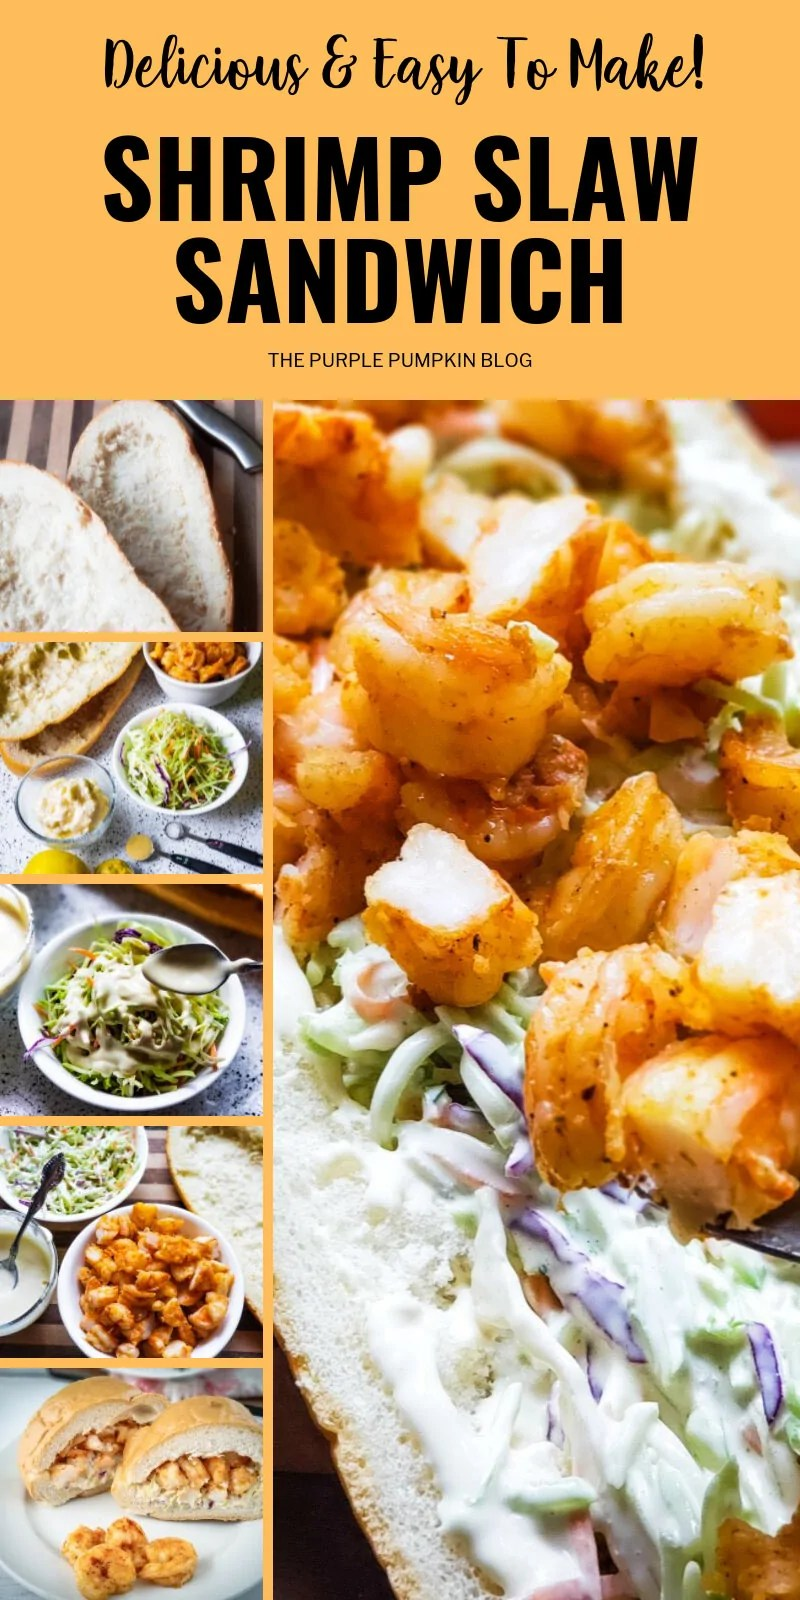 Delicious & easy to make shrimp slaw sandwich with images demonstrating how to make it.